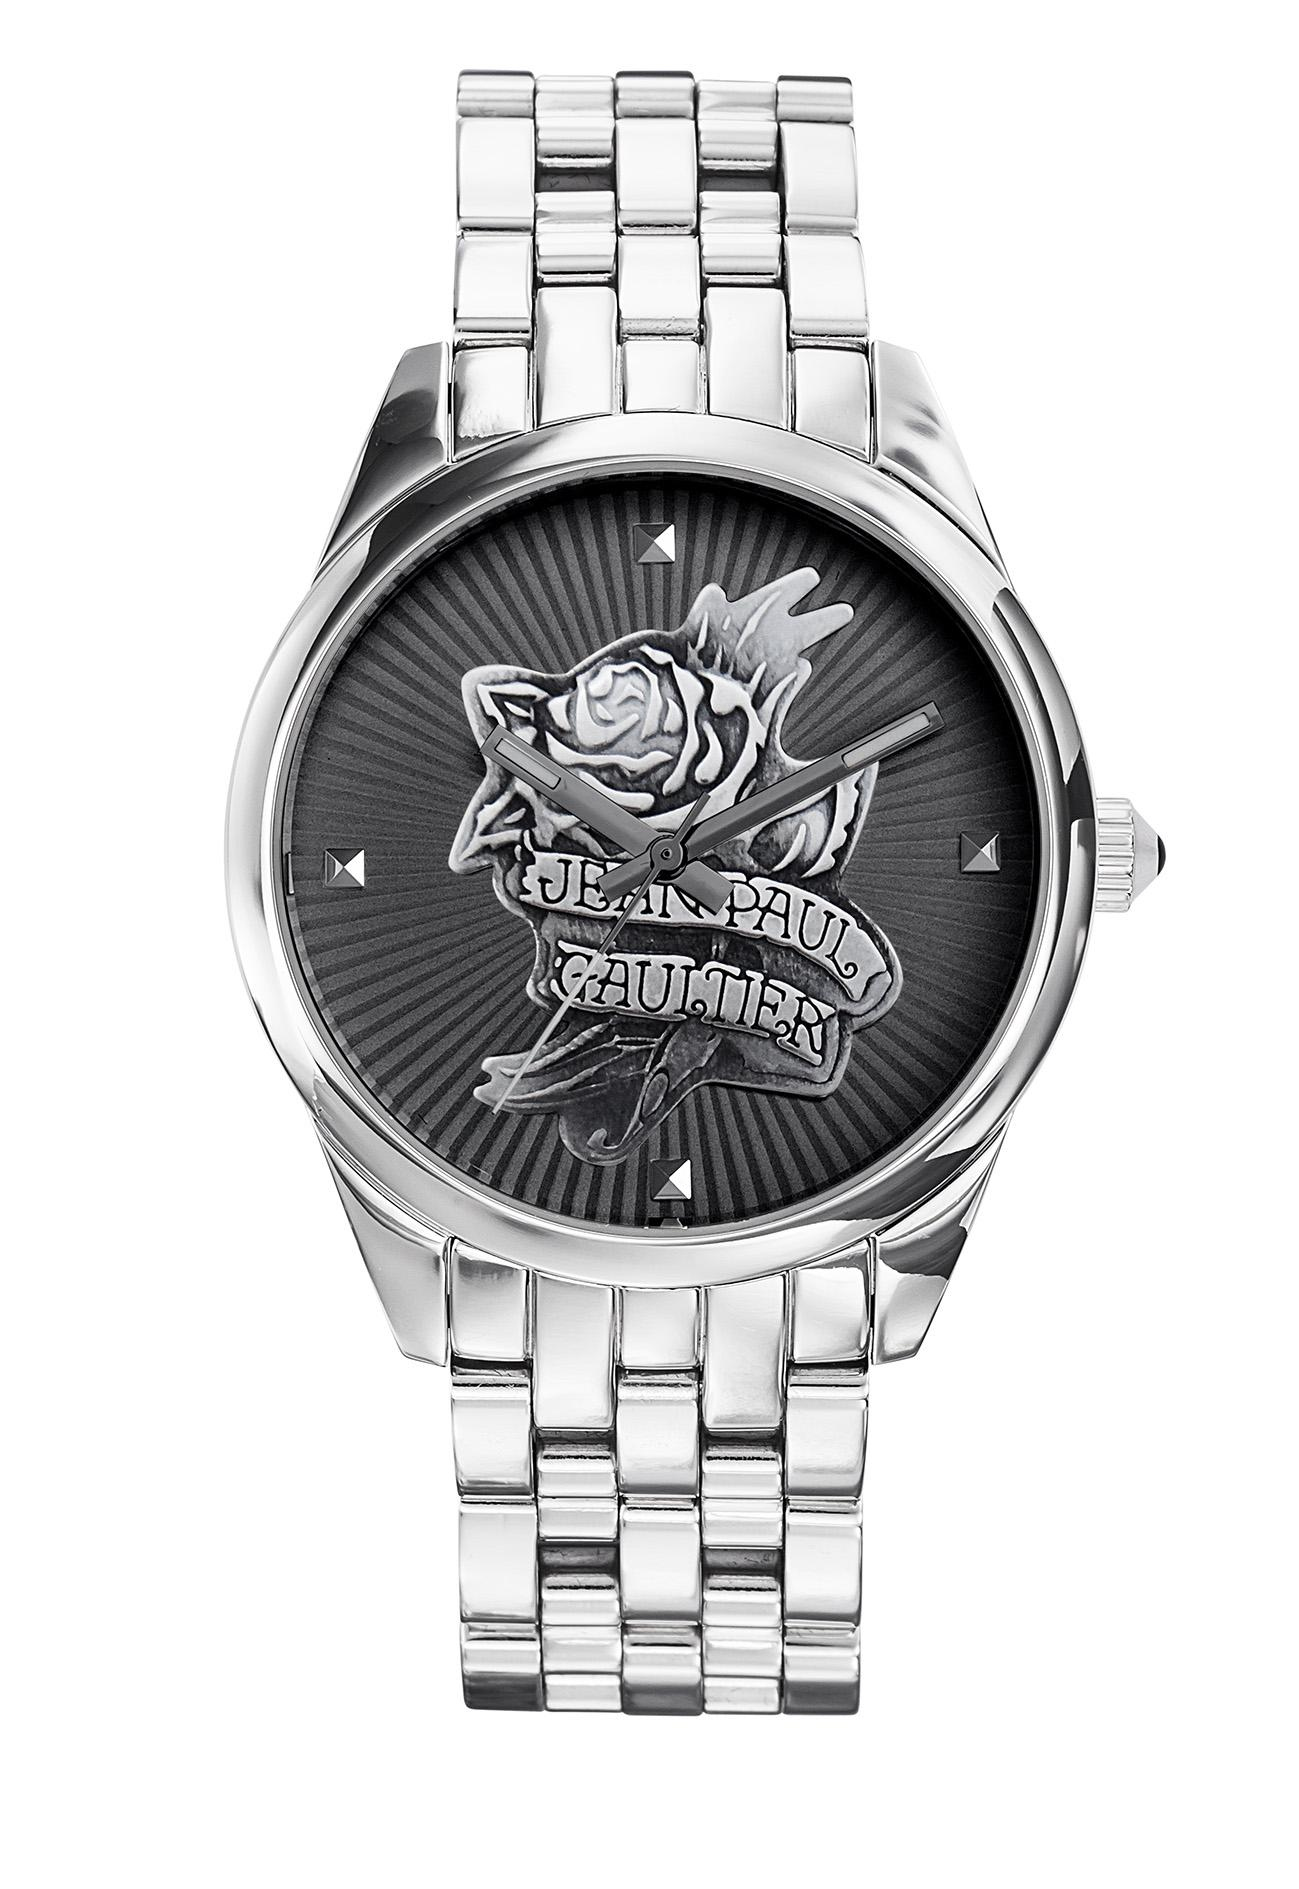 Jean Paul Gaultier watches